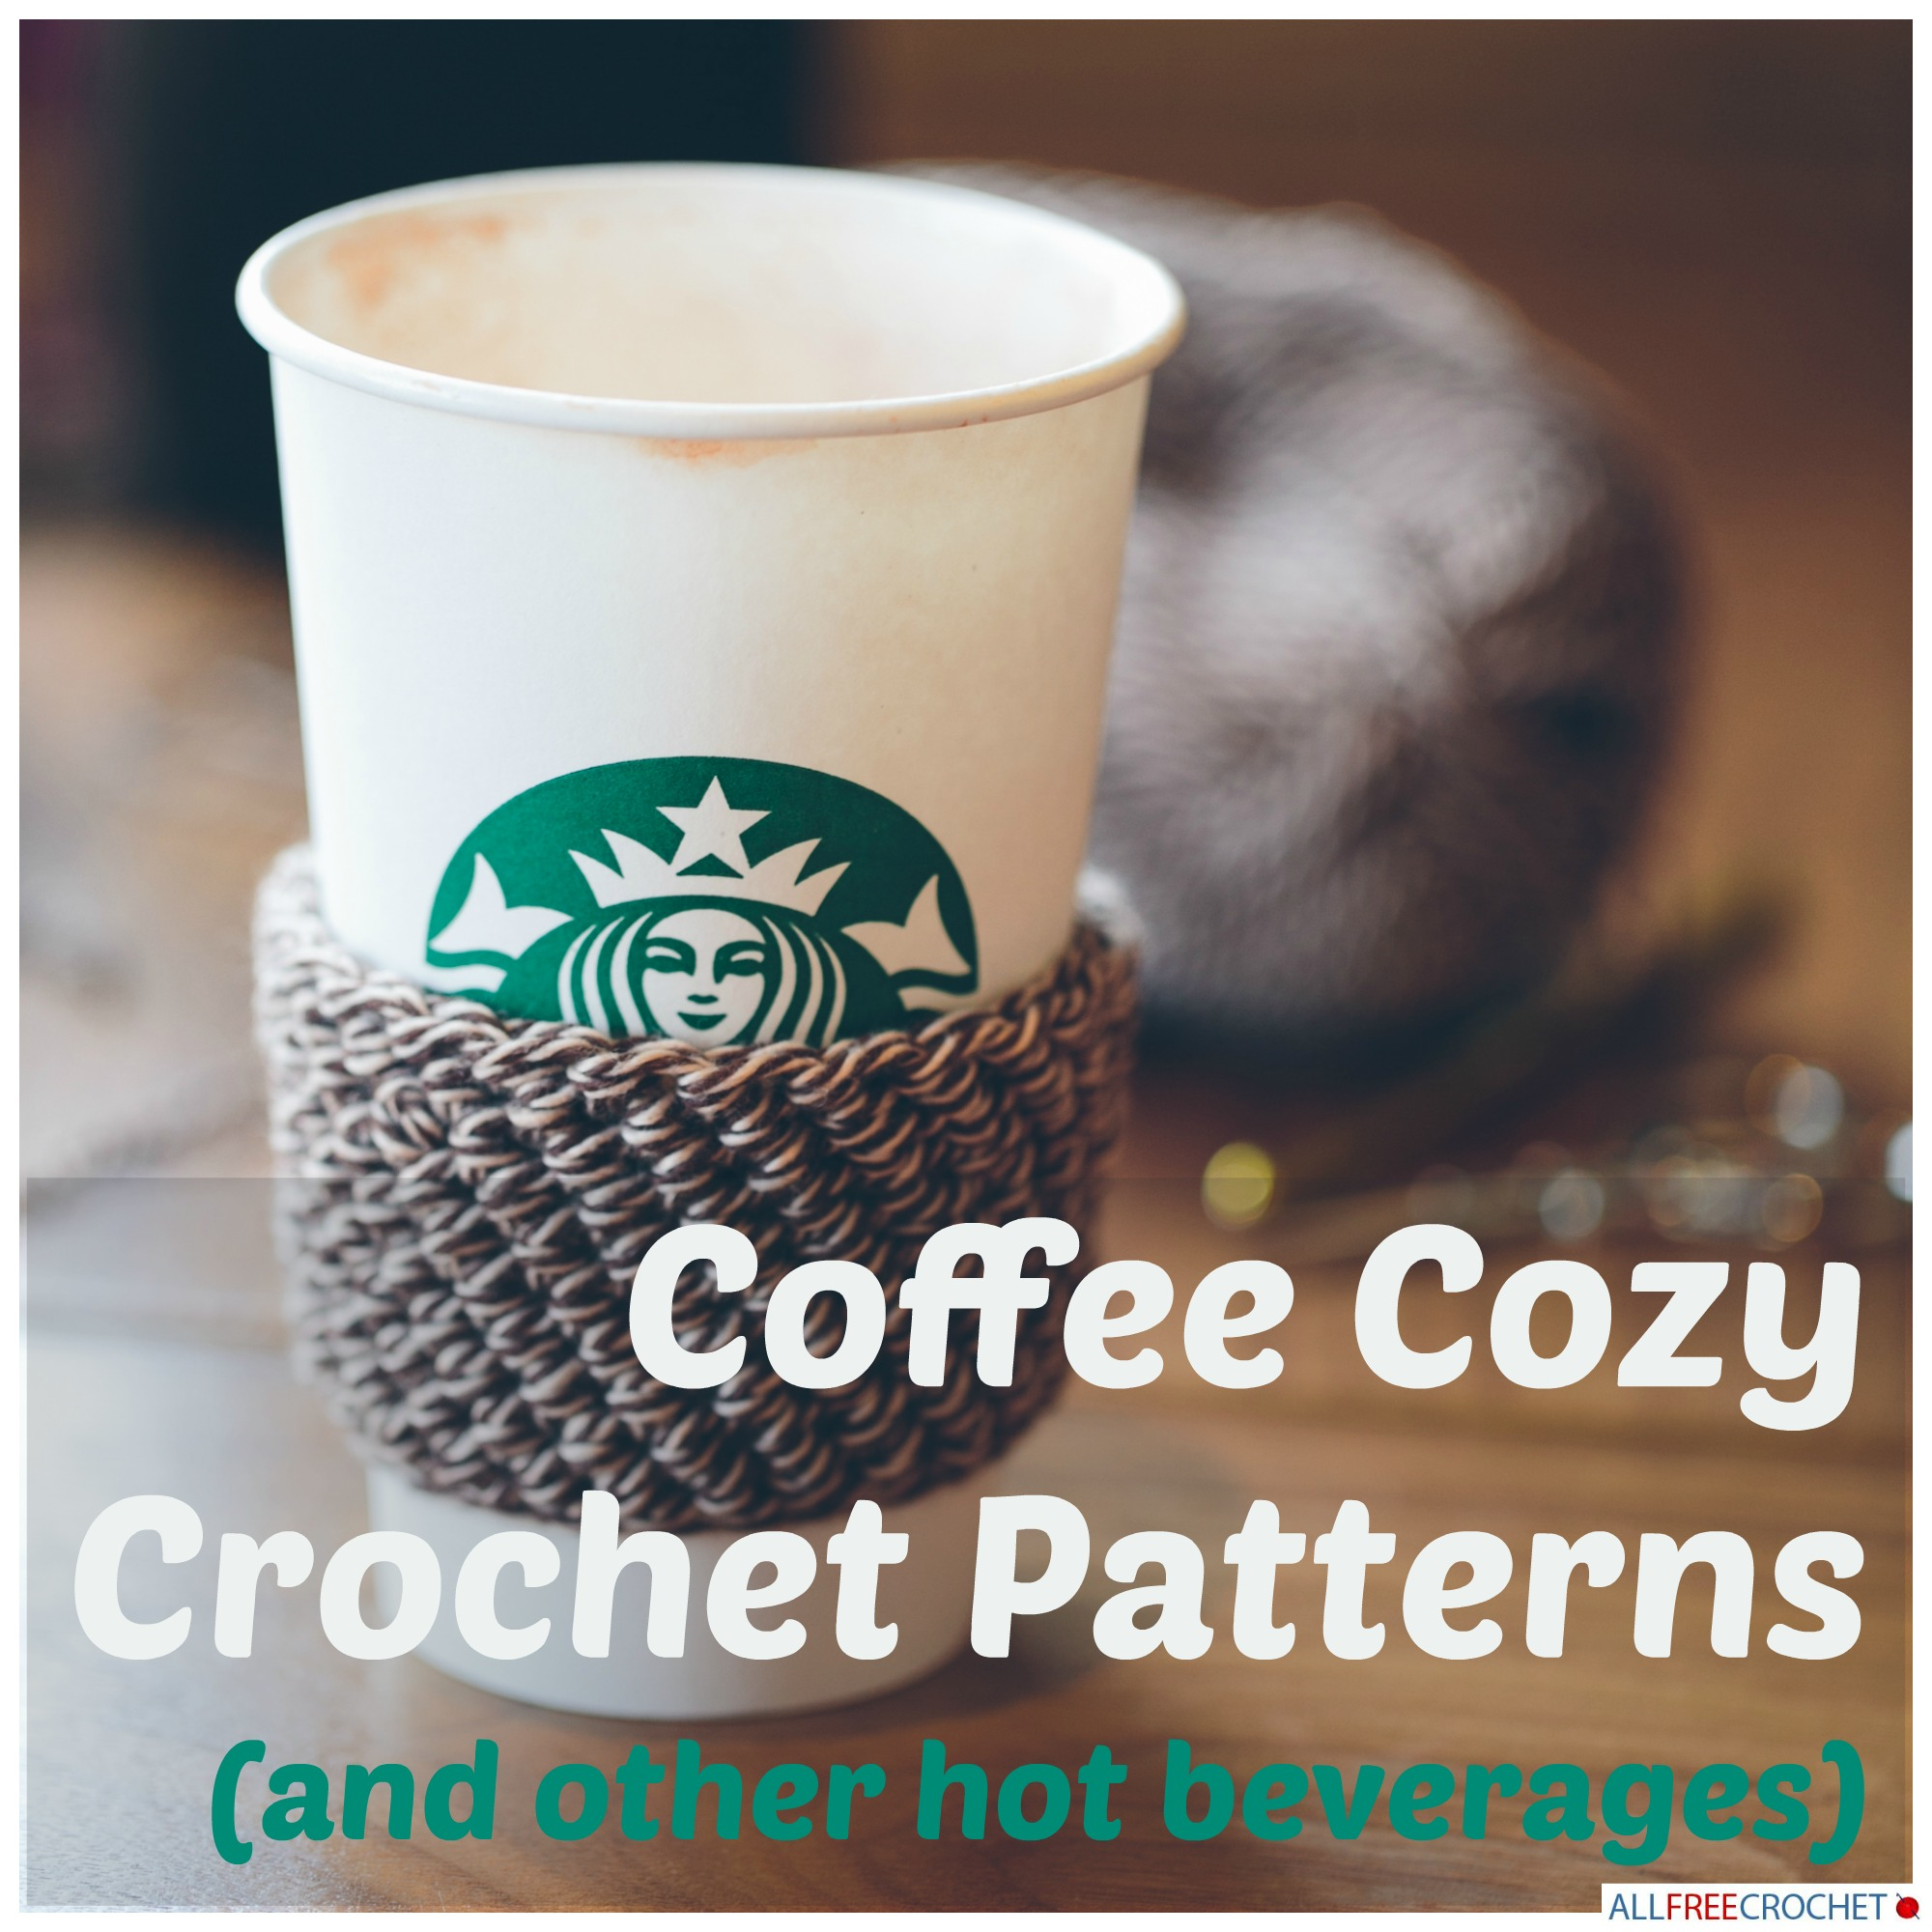 Coffee Cozy Crochet Patterns - Stitch and Unwind